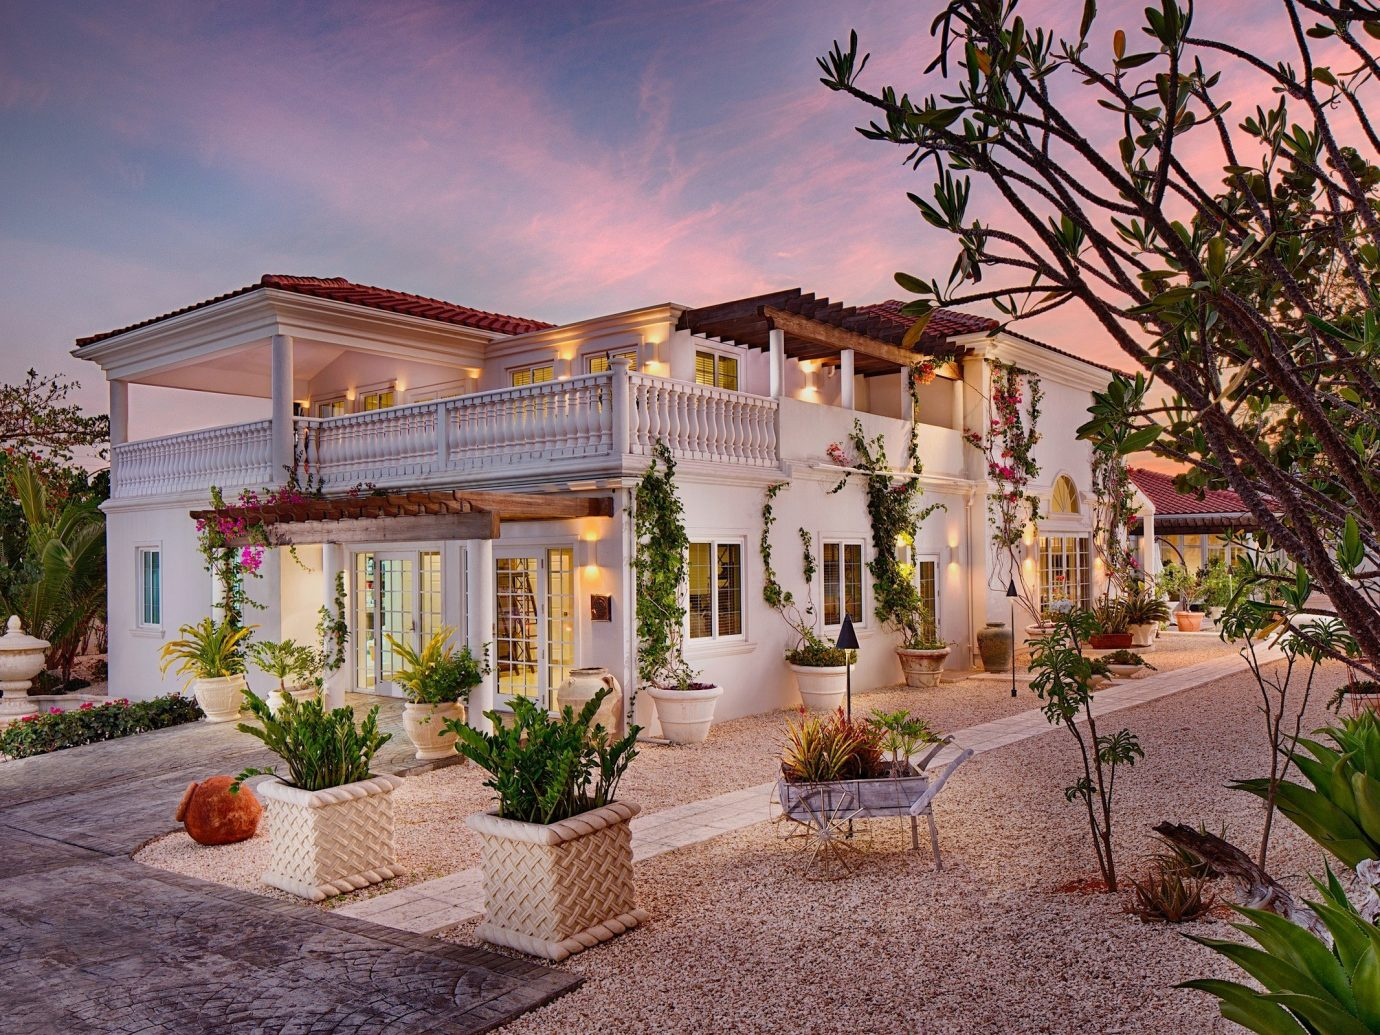 Hotels tree ground outdoor house property estate home residential area neighbourhood plant mansion vacation Courtyard real estate Villa Resort facade hacienda Village backyard cottage stone several